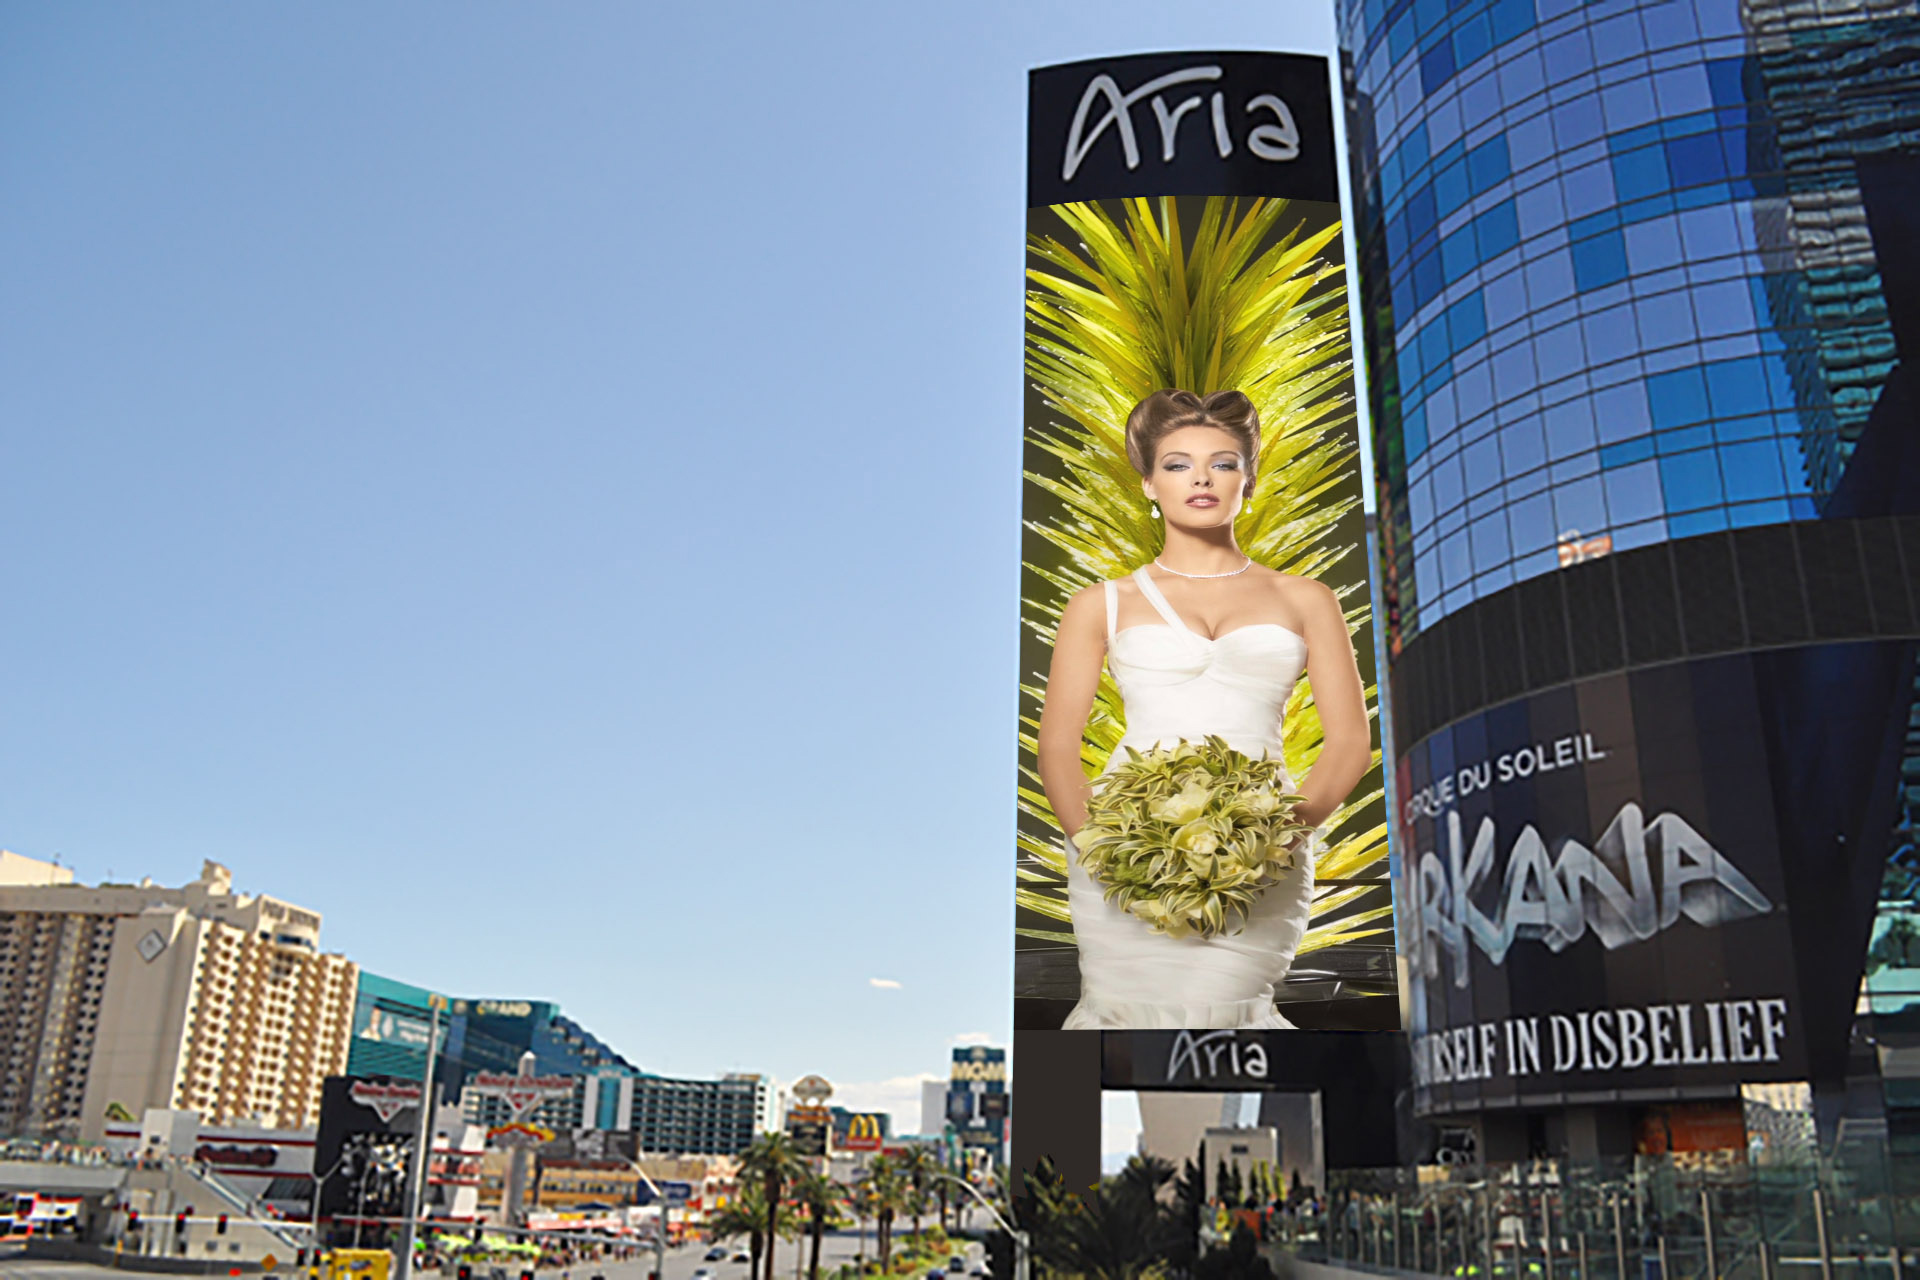 Aria wedding ad on outdoor display